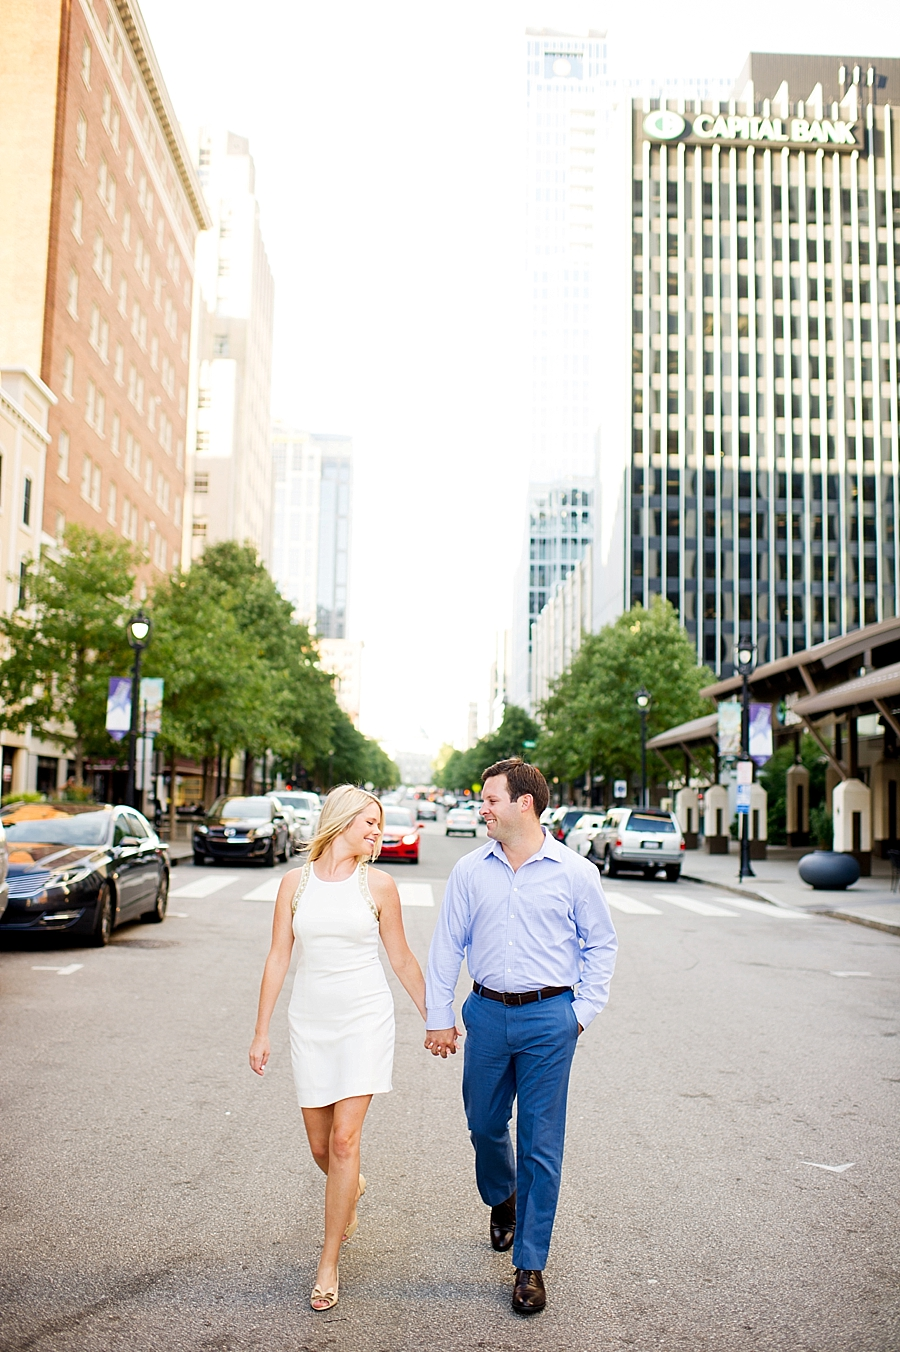 Ashley & Ty's outfits for their spring downtown Raleigh engagement session were perfect for the setting and time of year.